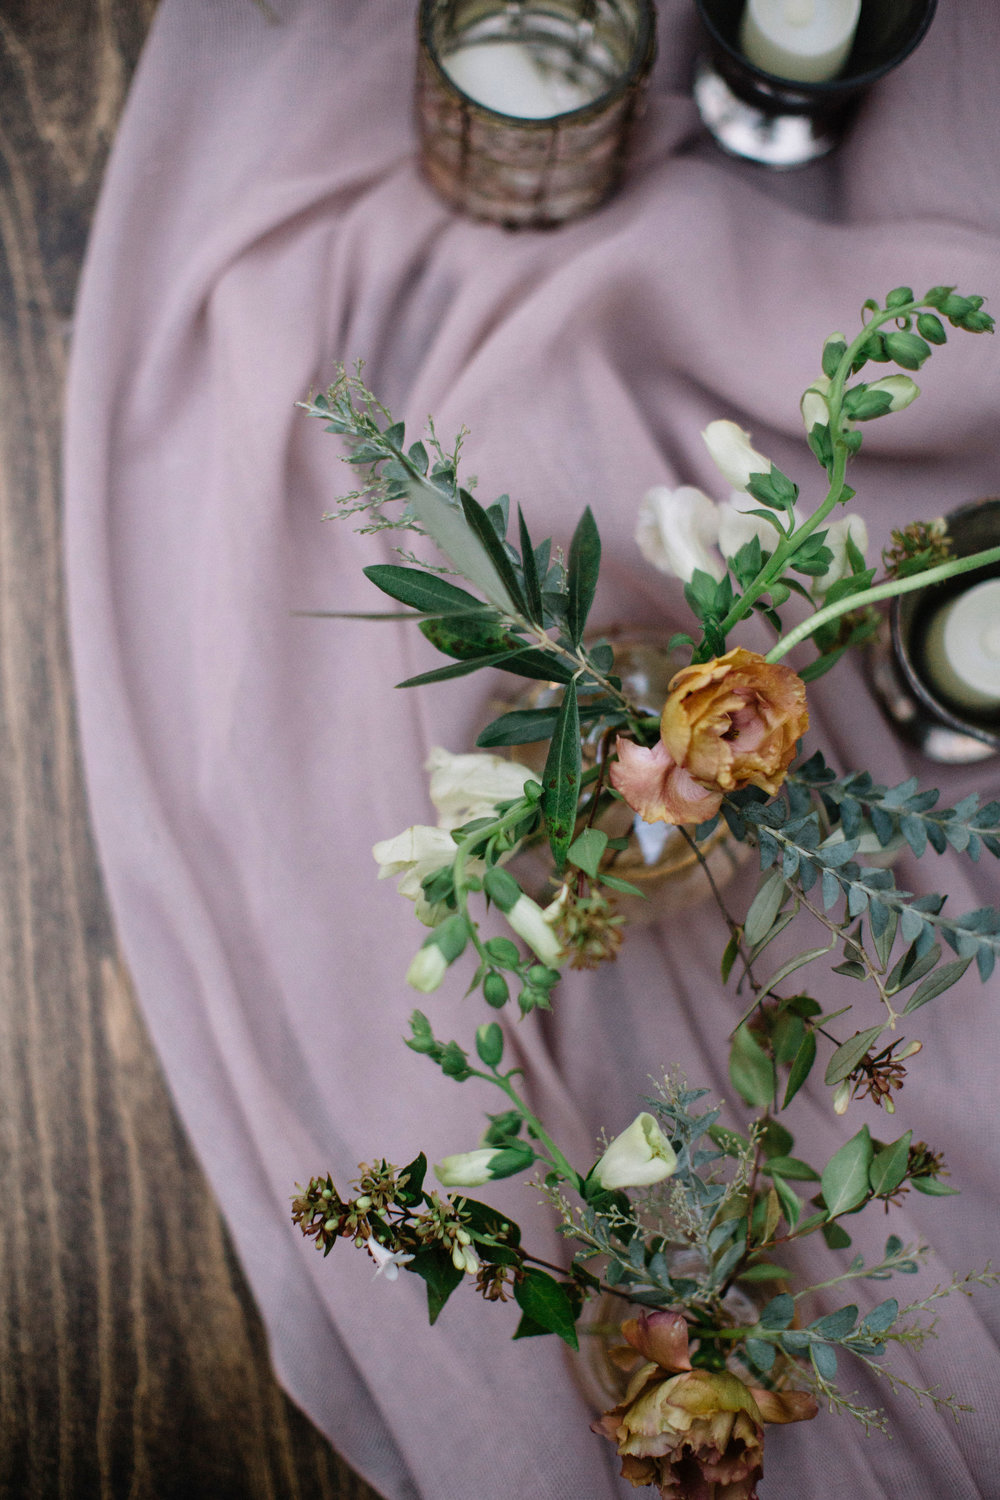 Garden inspired  wedding palette by Venn Floral with Foxglove, Olive branches and Distant Drum Roses photographed by Lucille Lawrence in Healdsburg, California